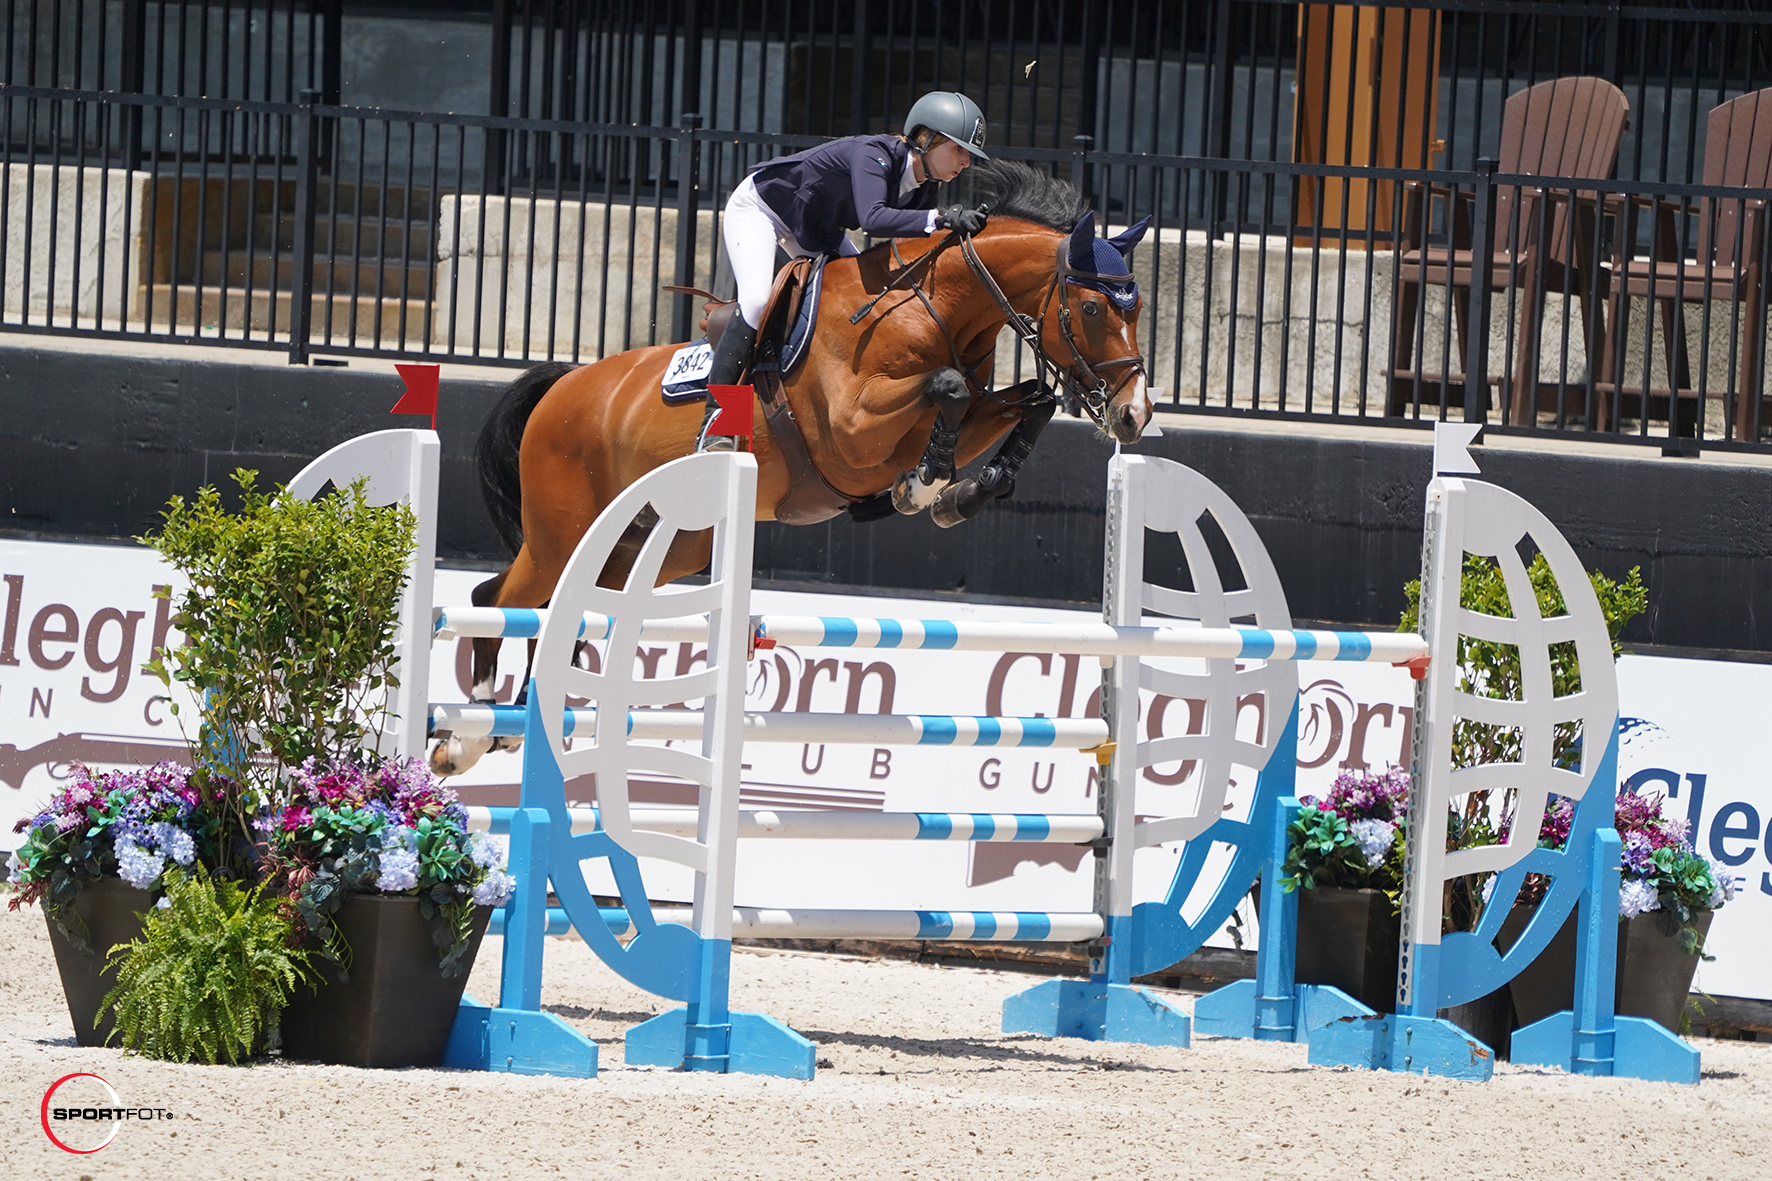 Abigail McArdle and Victorio 5 Victorious in the $25,000 Tryon Resort Sunday Classic